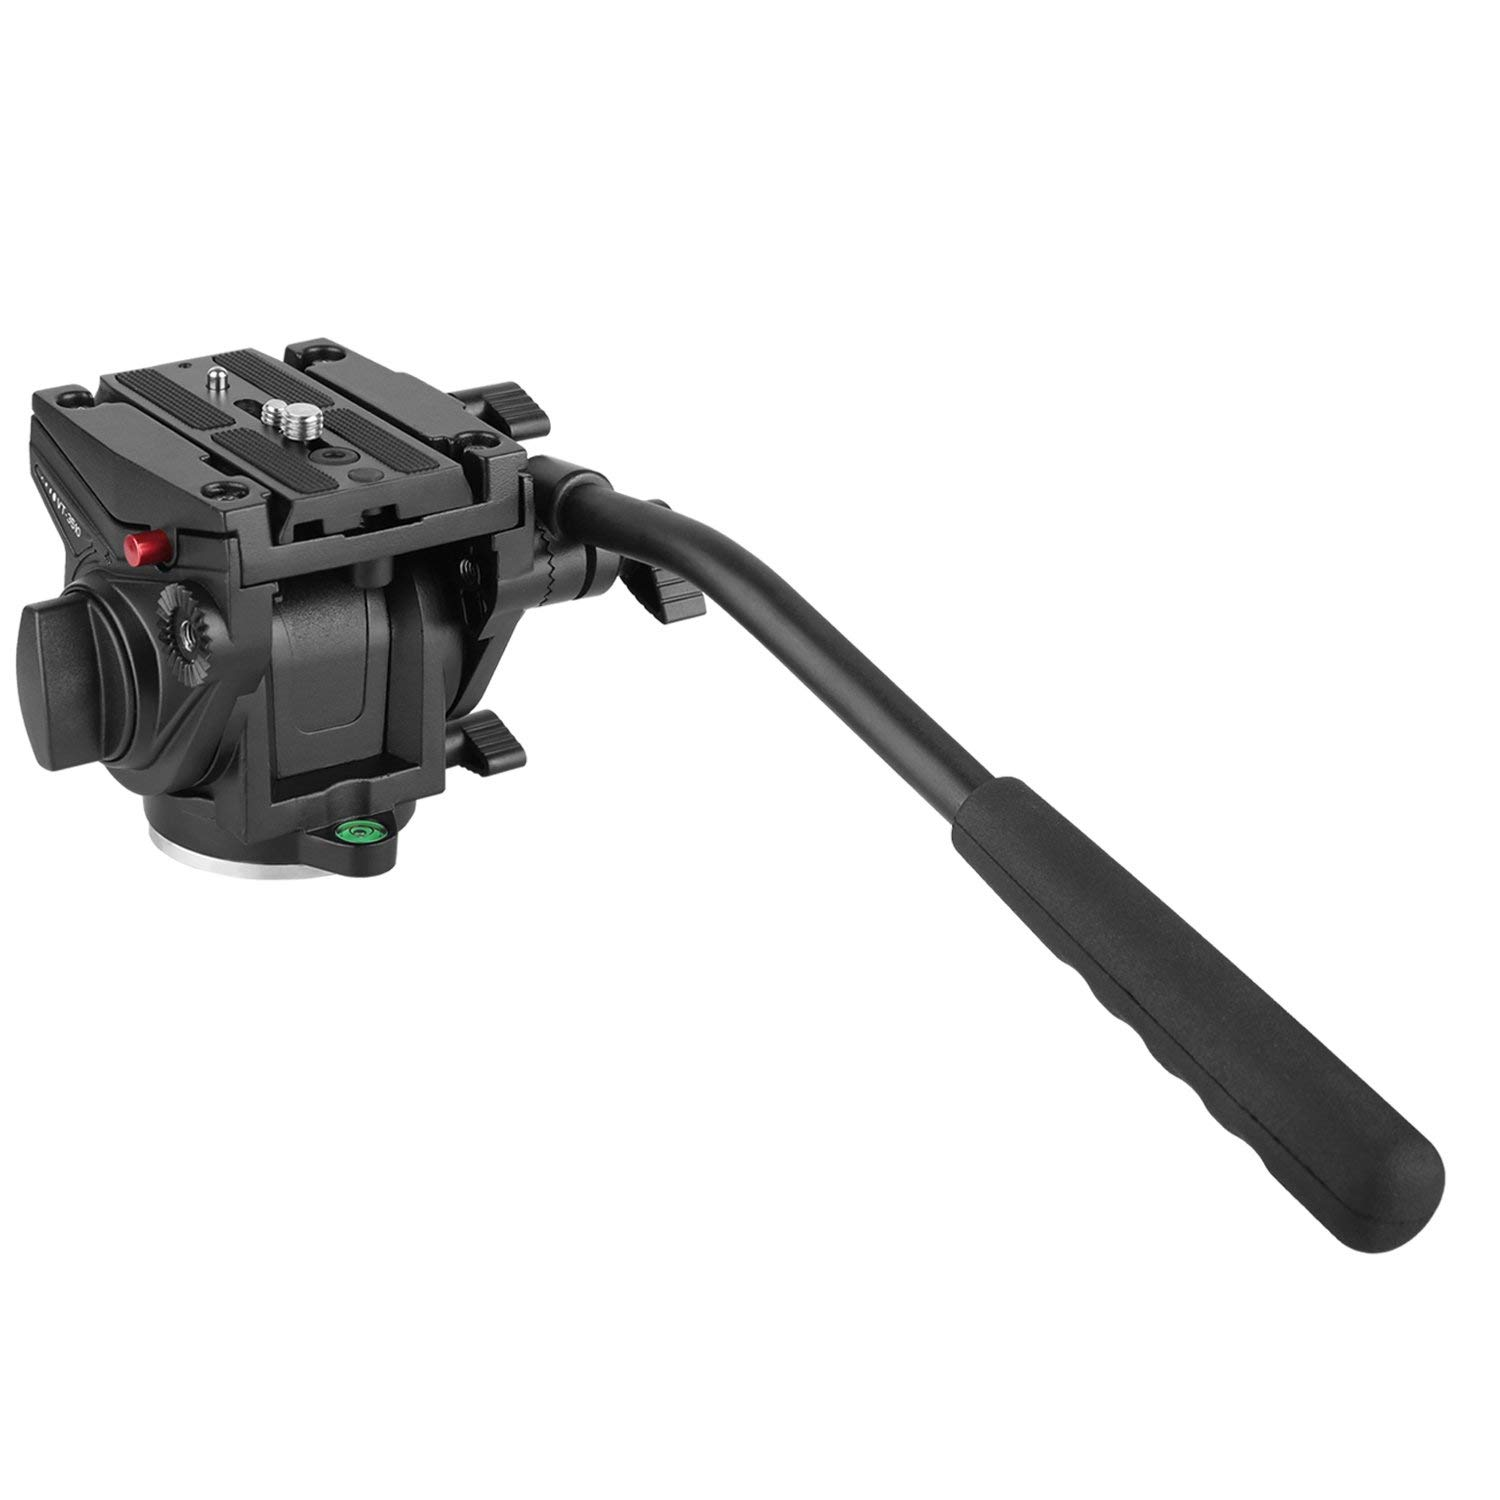 KINGJOY Heavy Duty Video Camera Fluid Drag Head, Fluid Drag Pan Tilt Head for DSLR Camera Video Camcorder Shooting Filming benro s2 video head pan and tilt head for dslr video camera